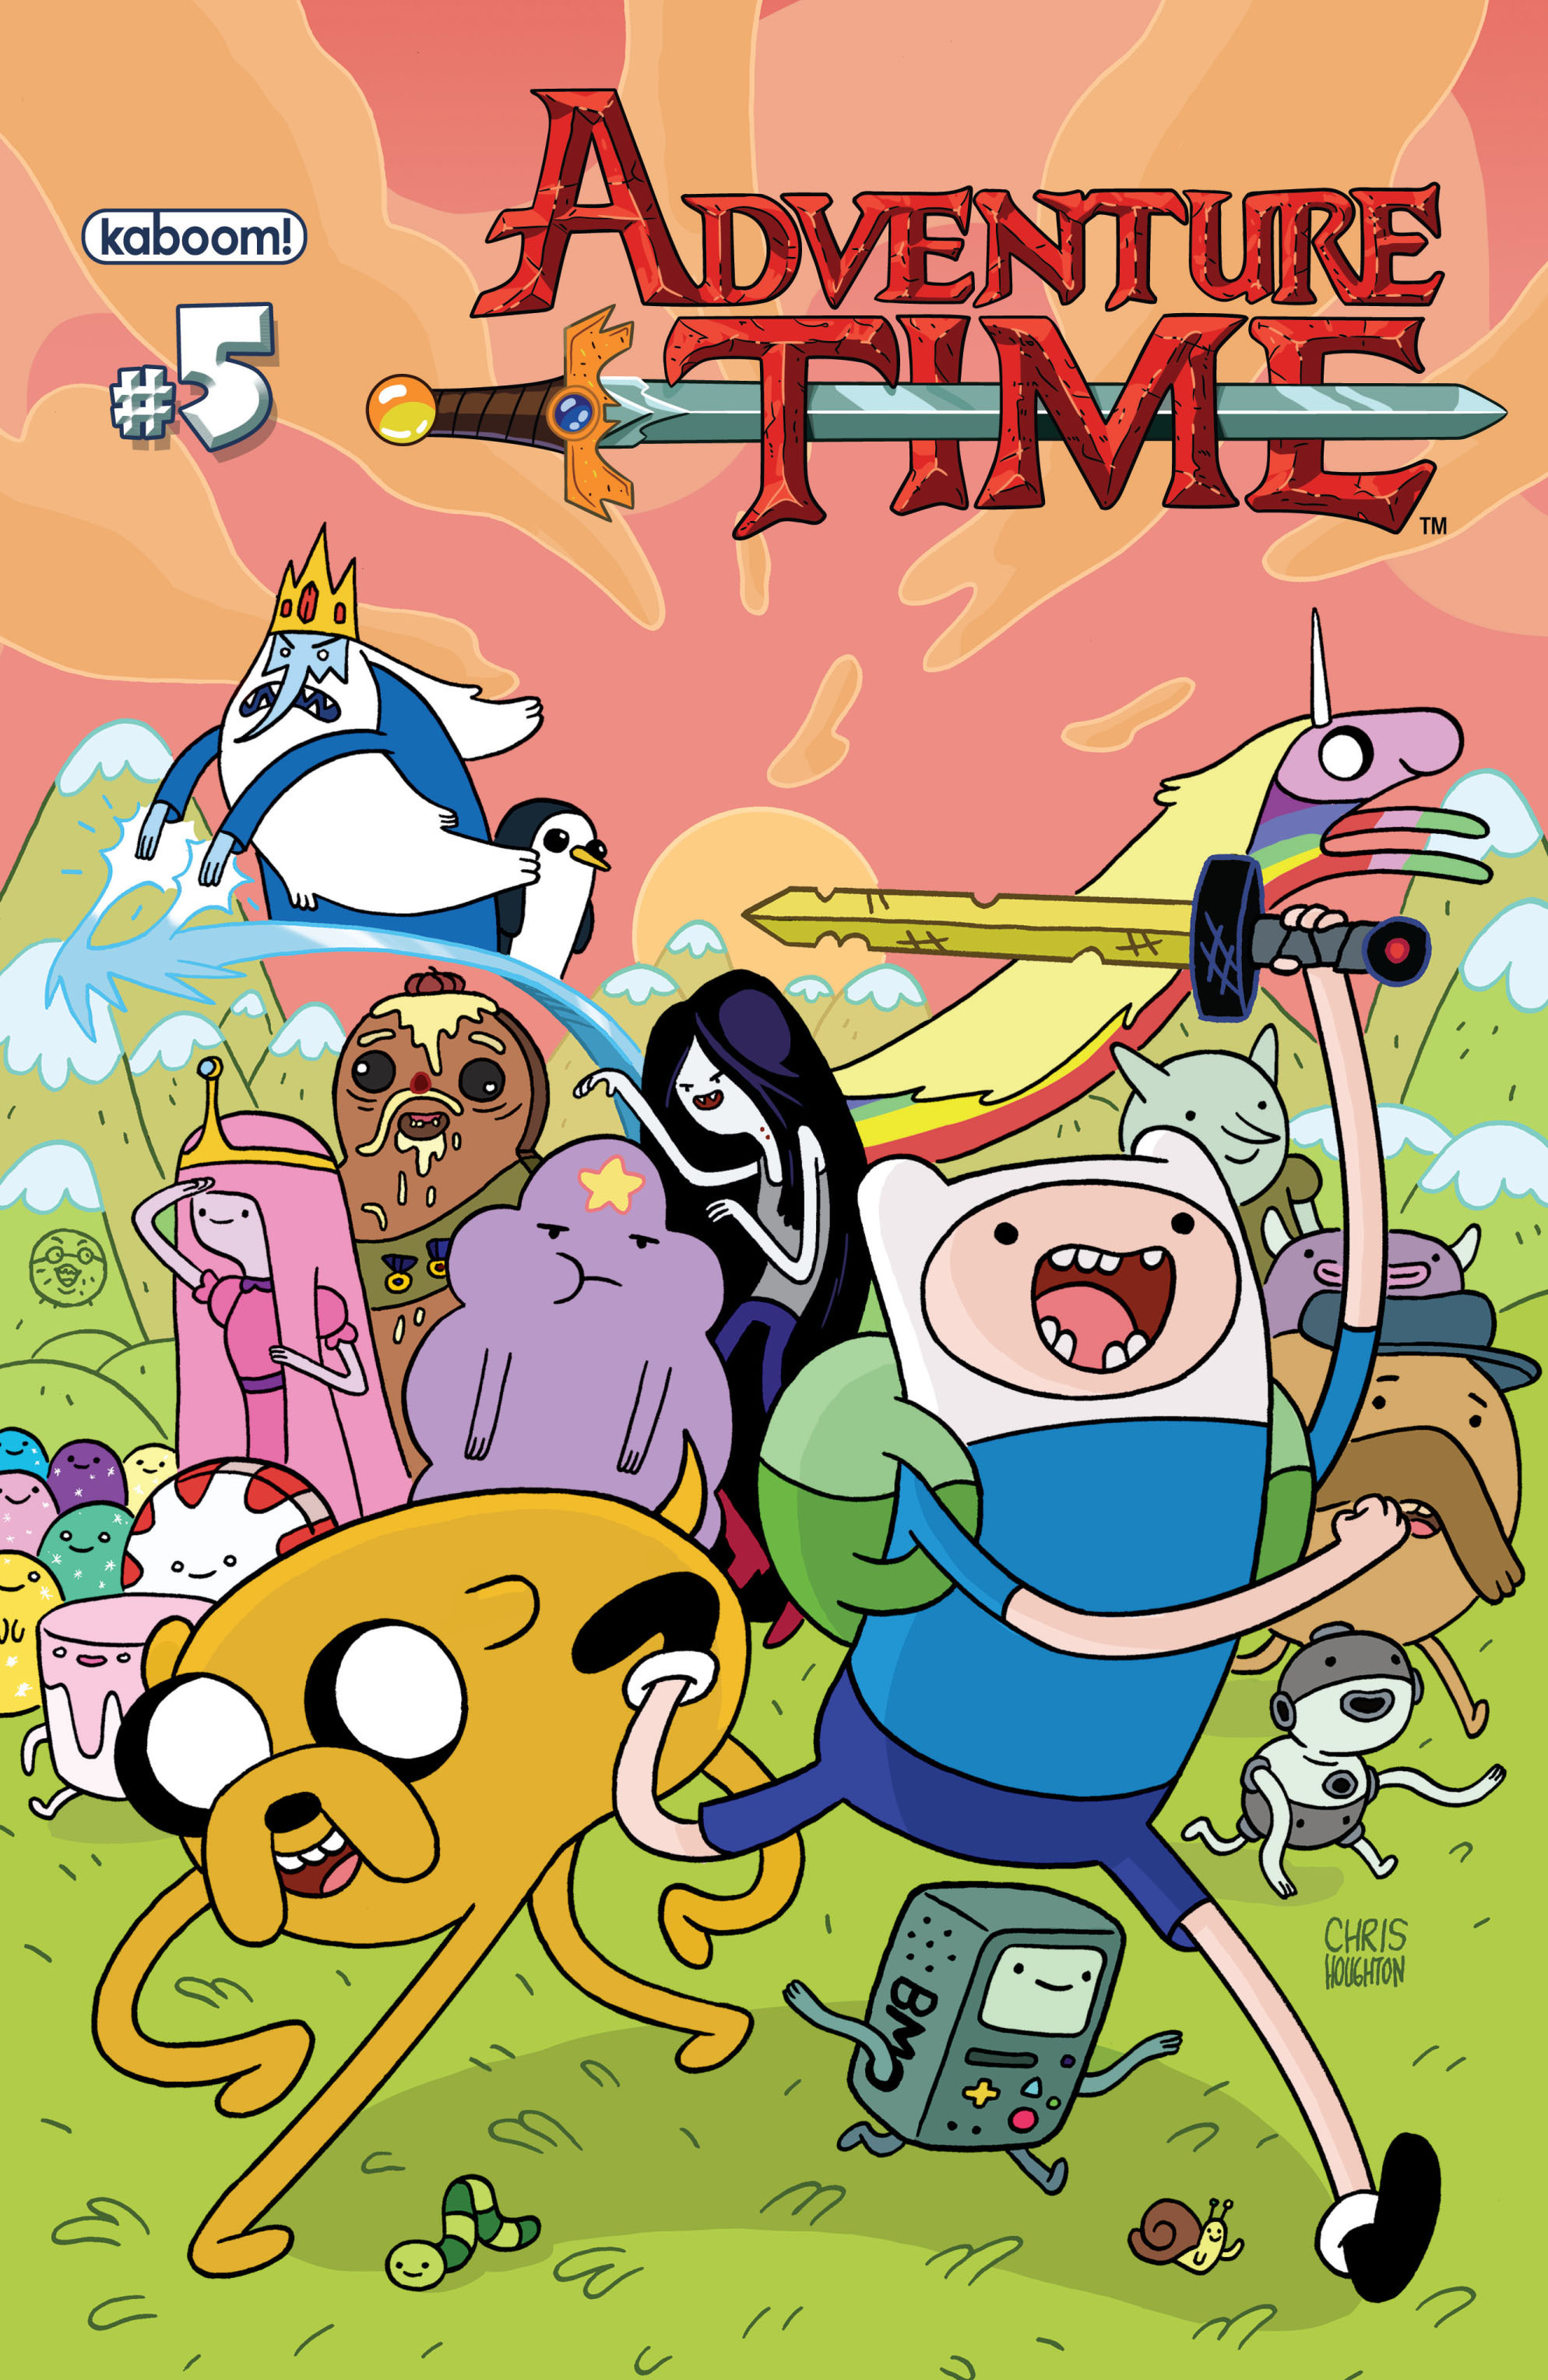 Read online Adventure Time comic -  Issue #5 - 1